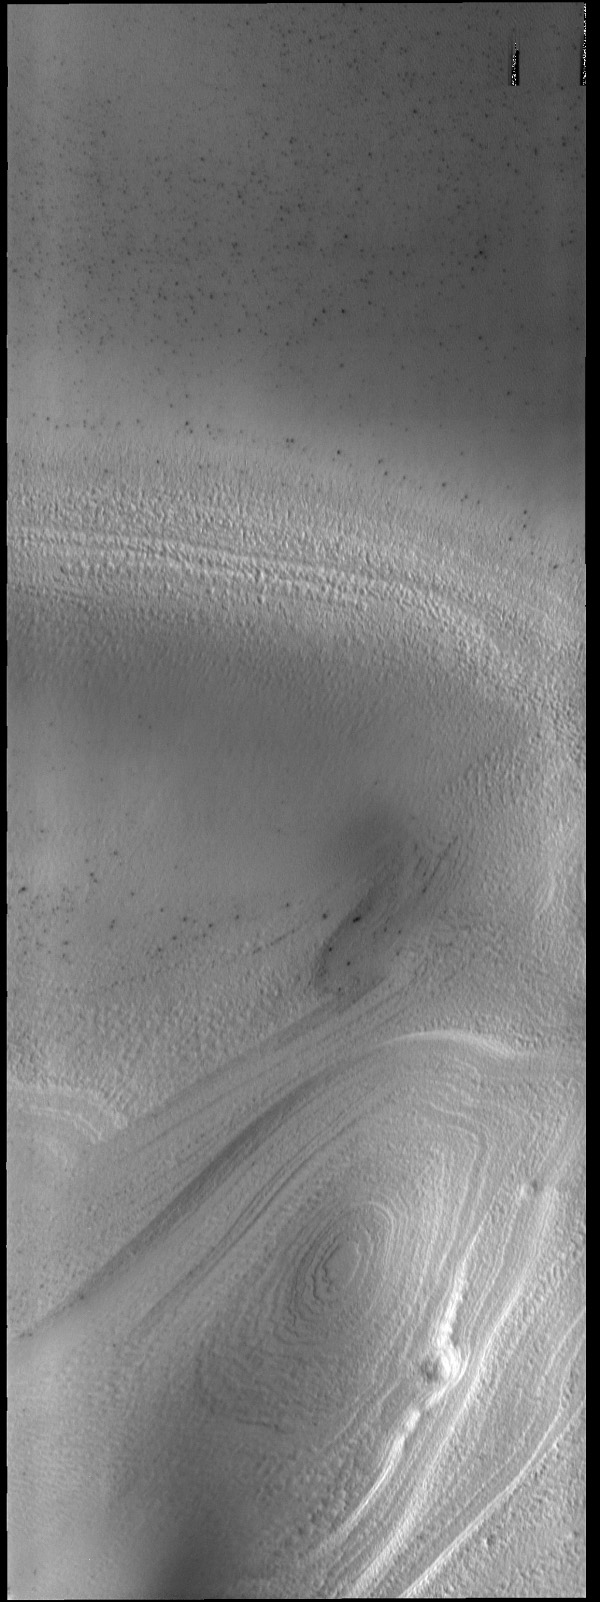 Southern hemisphere spring has arrived at the south polar cap. The ice layers that make up the cap are easily seen in this image from NASA's 2001 Mars Odyssey spacecraft.